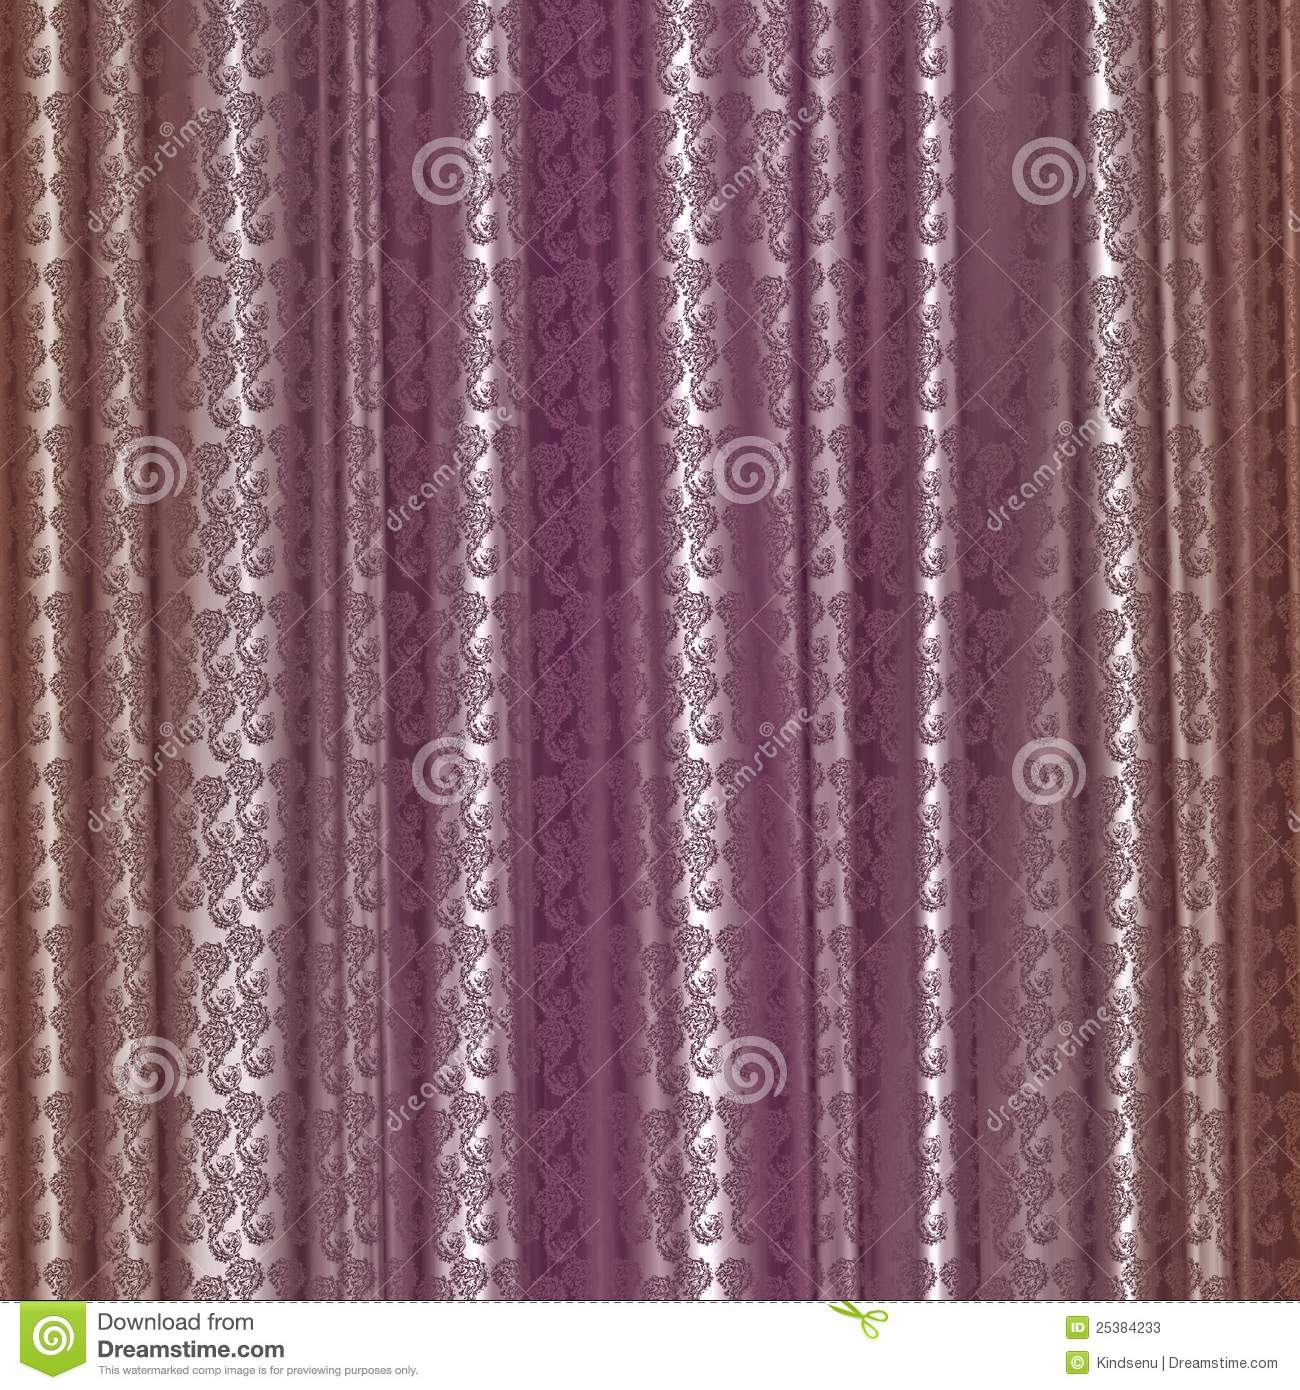 Elegant pink and brown damask pattern curtain with realistic fabric ...